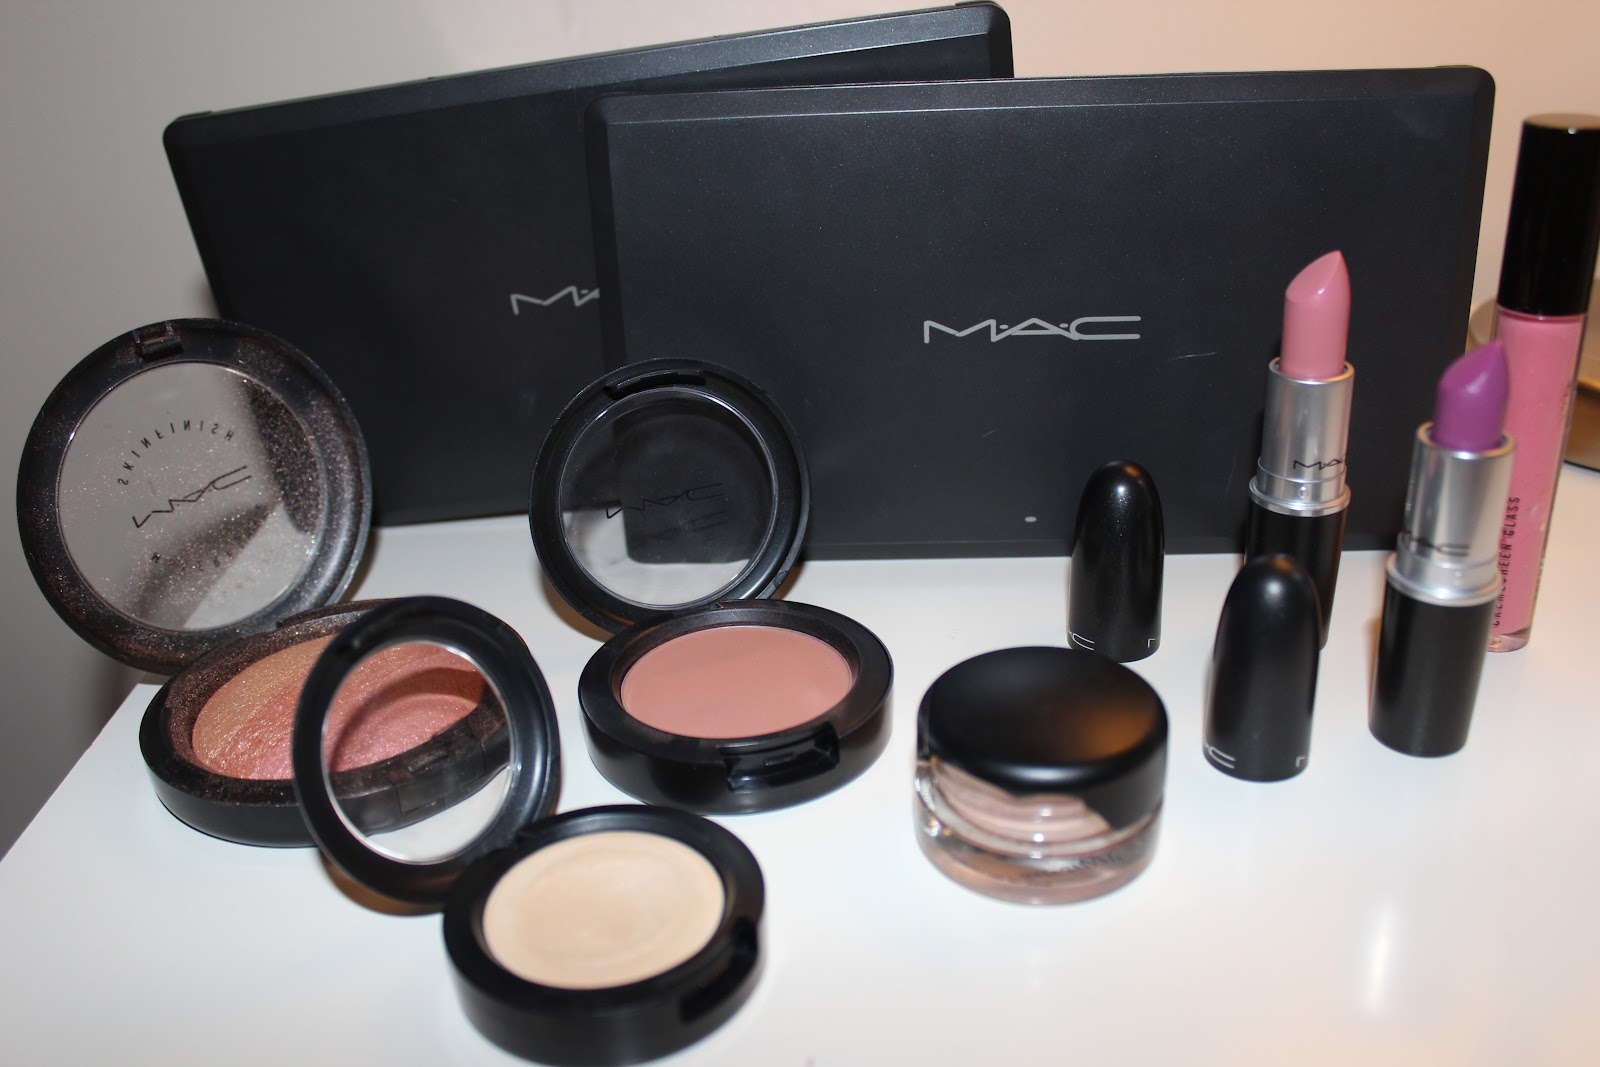 Most Expensive Mac Makeup Product My Top 10 Products